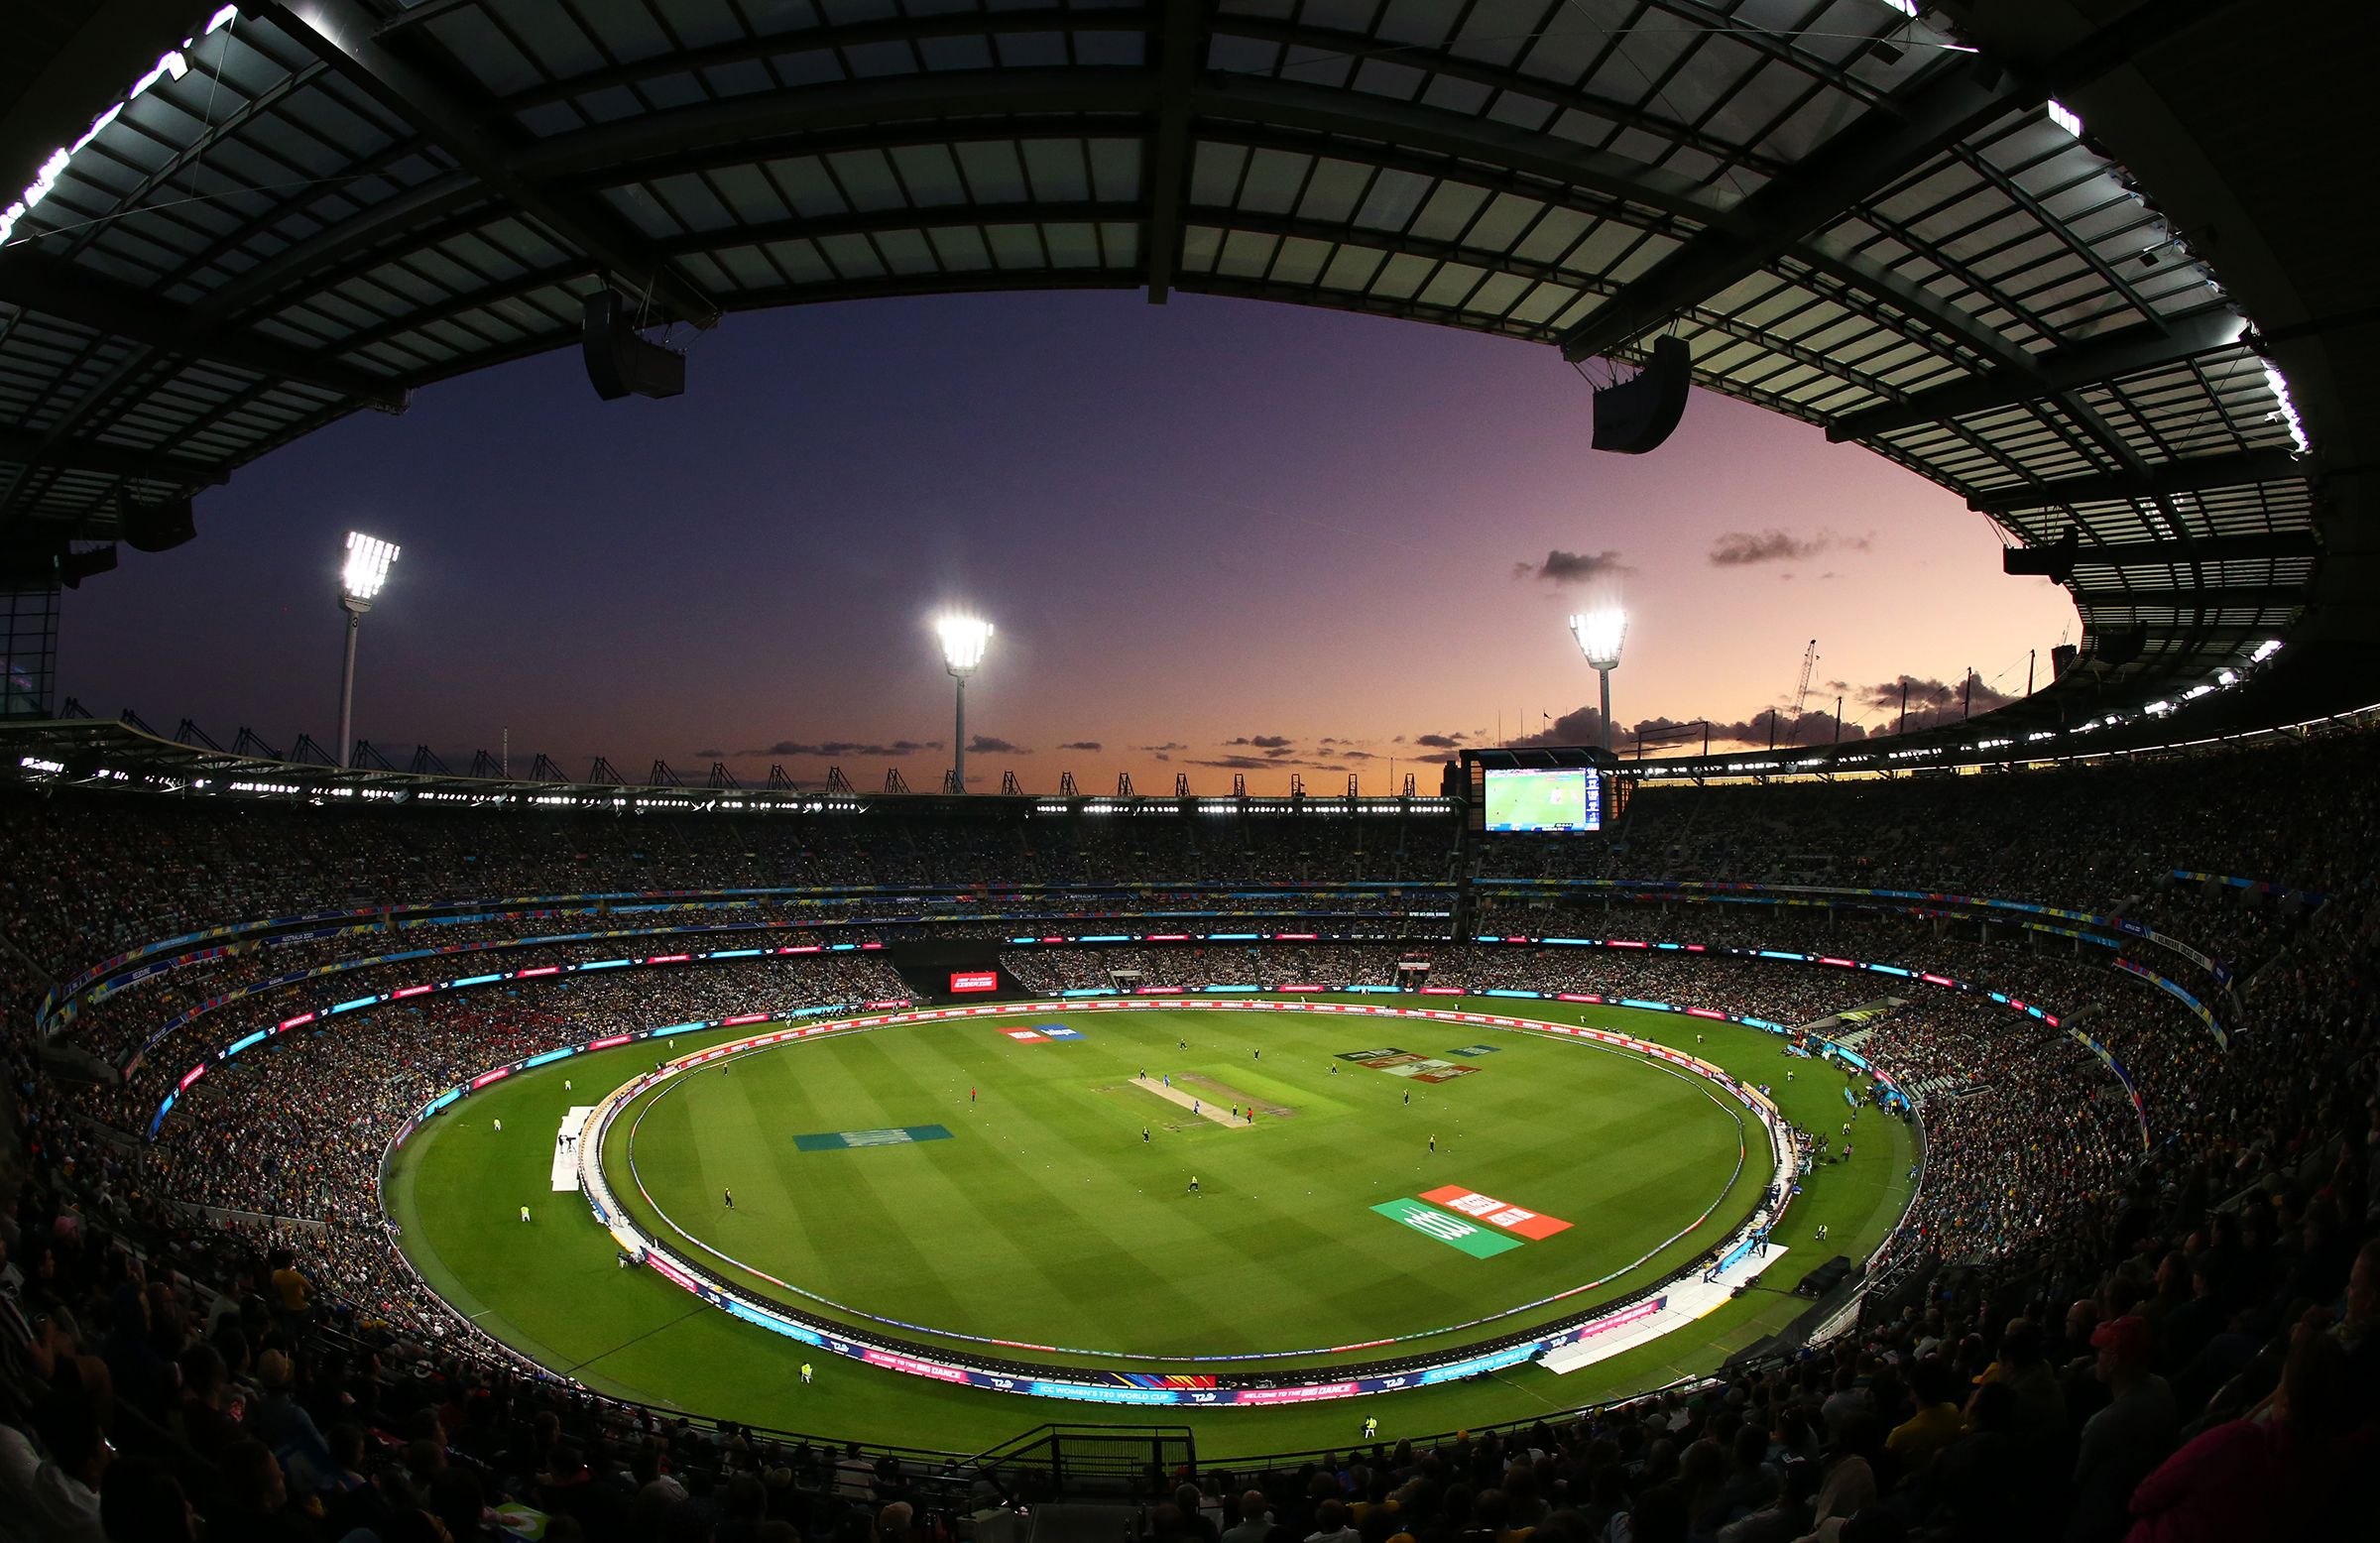 The MCG hosted 86,174 fans for the women's World Cup final in March // Getty